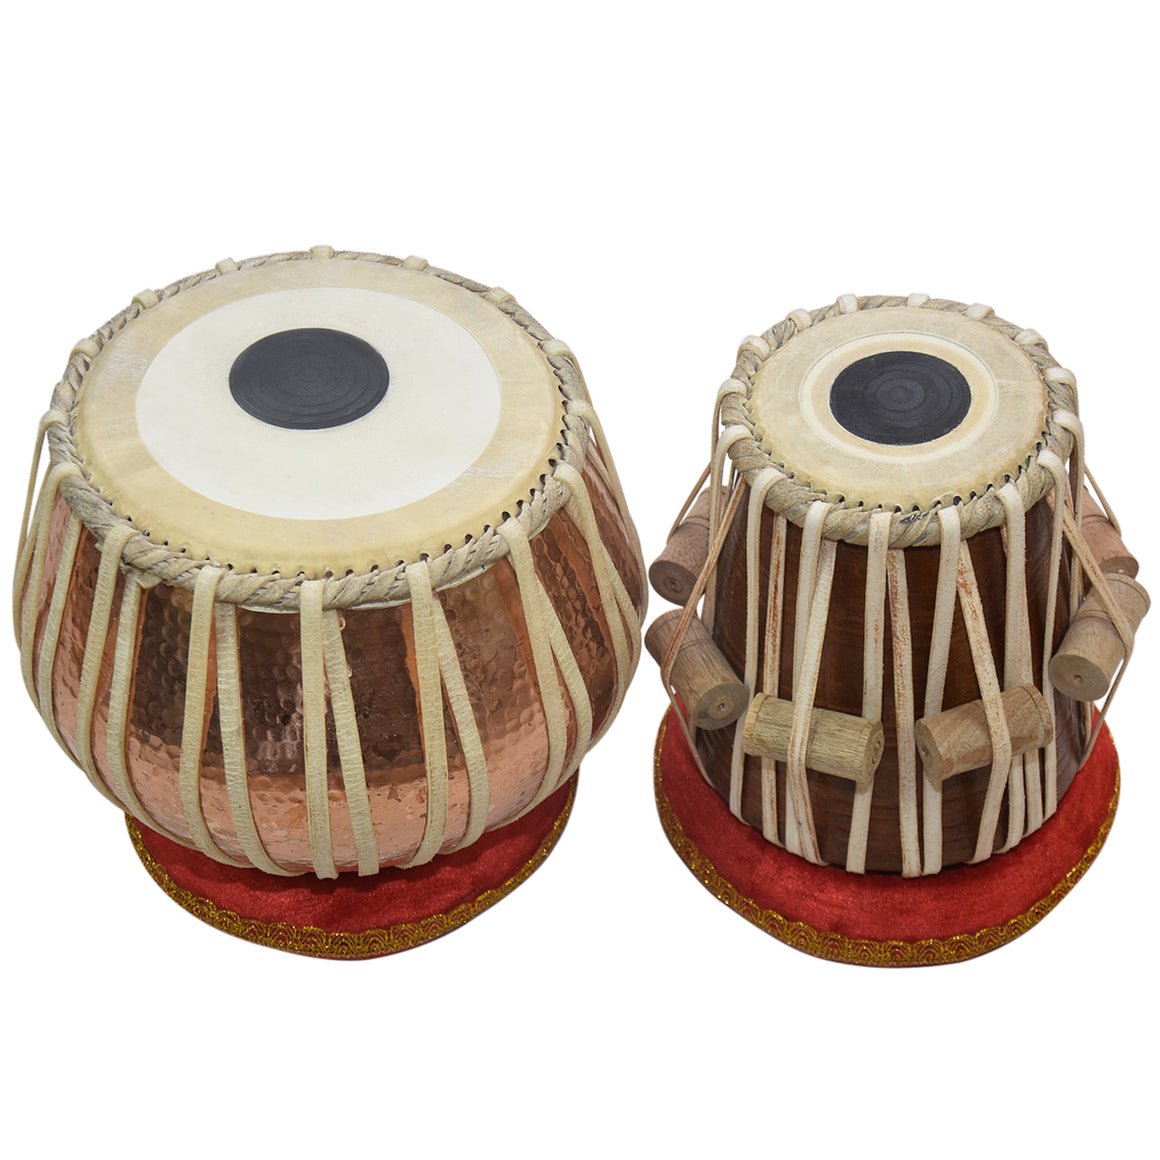 Copy of TAAL Standard 3.5 KG Copper Tabla Set